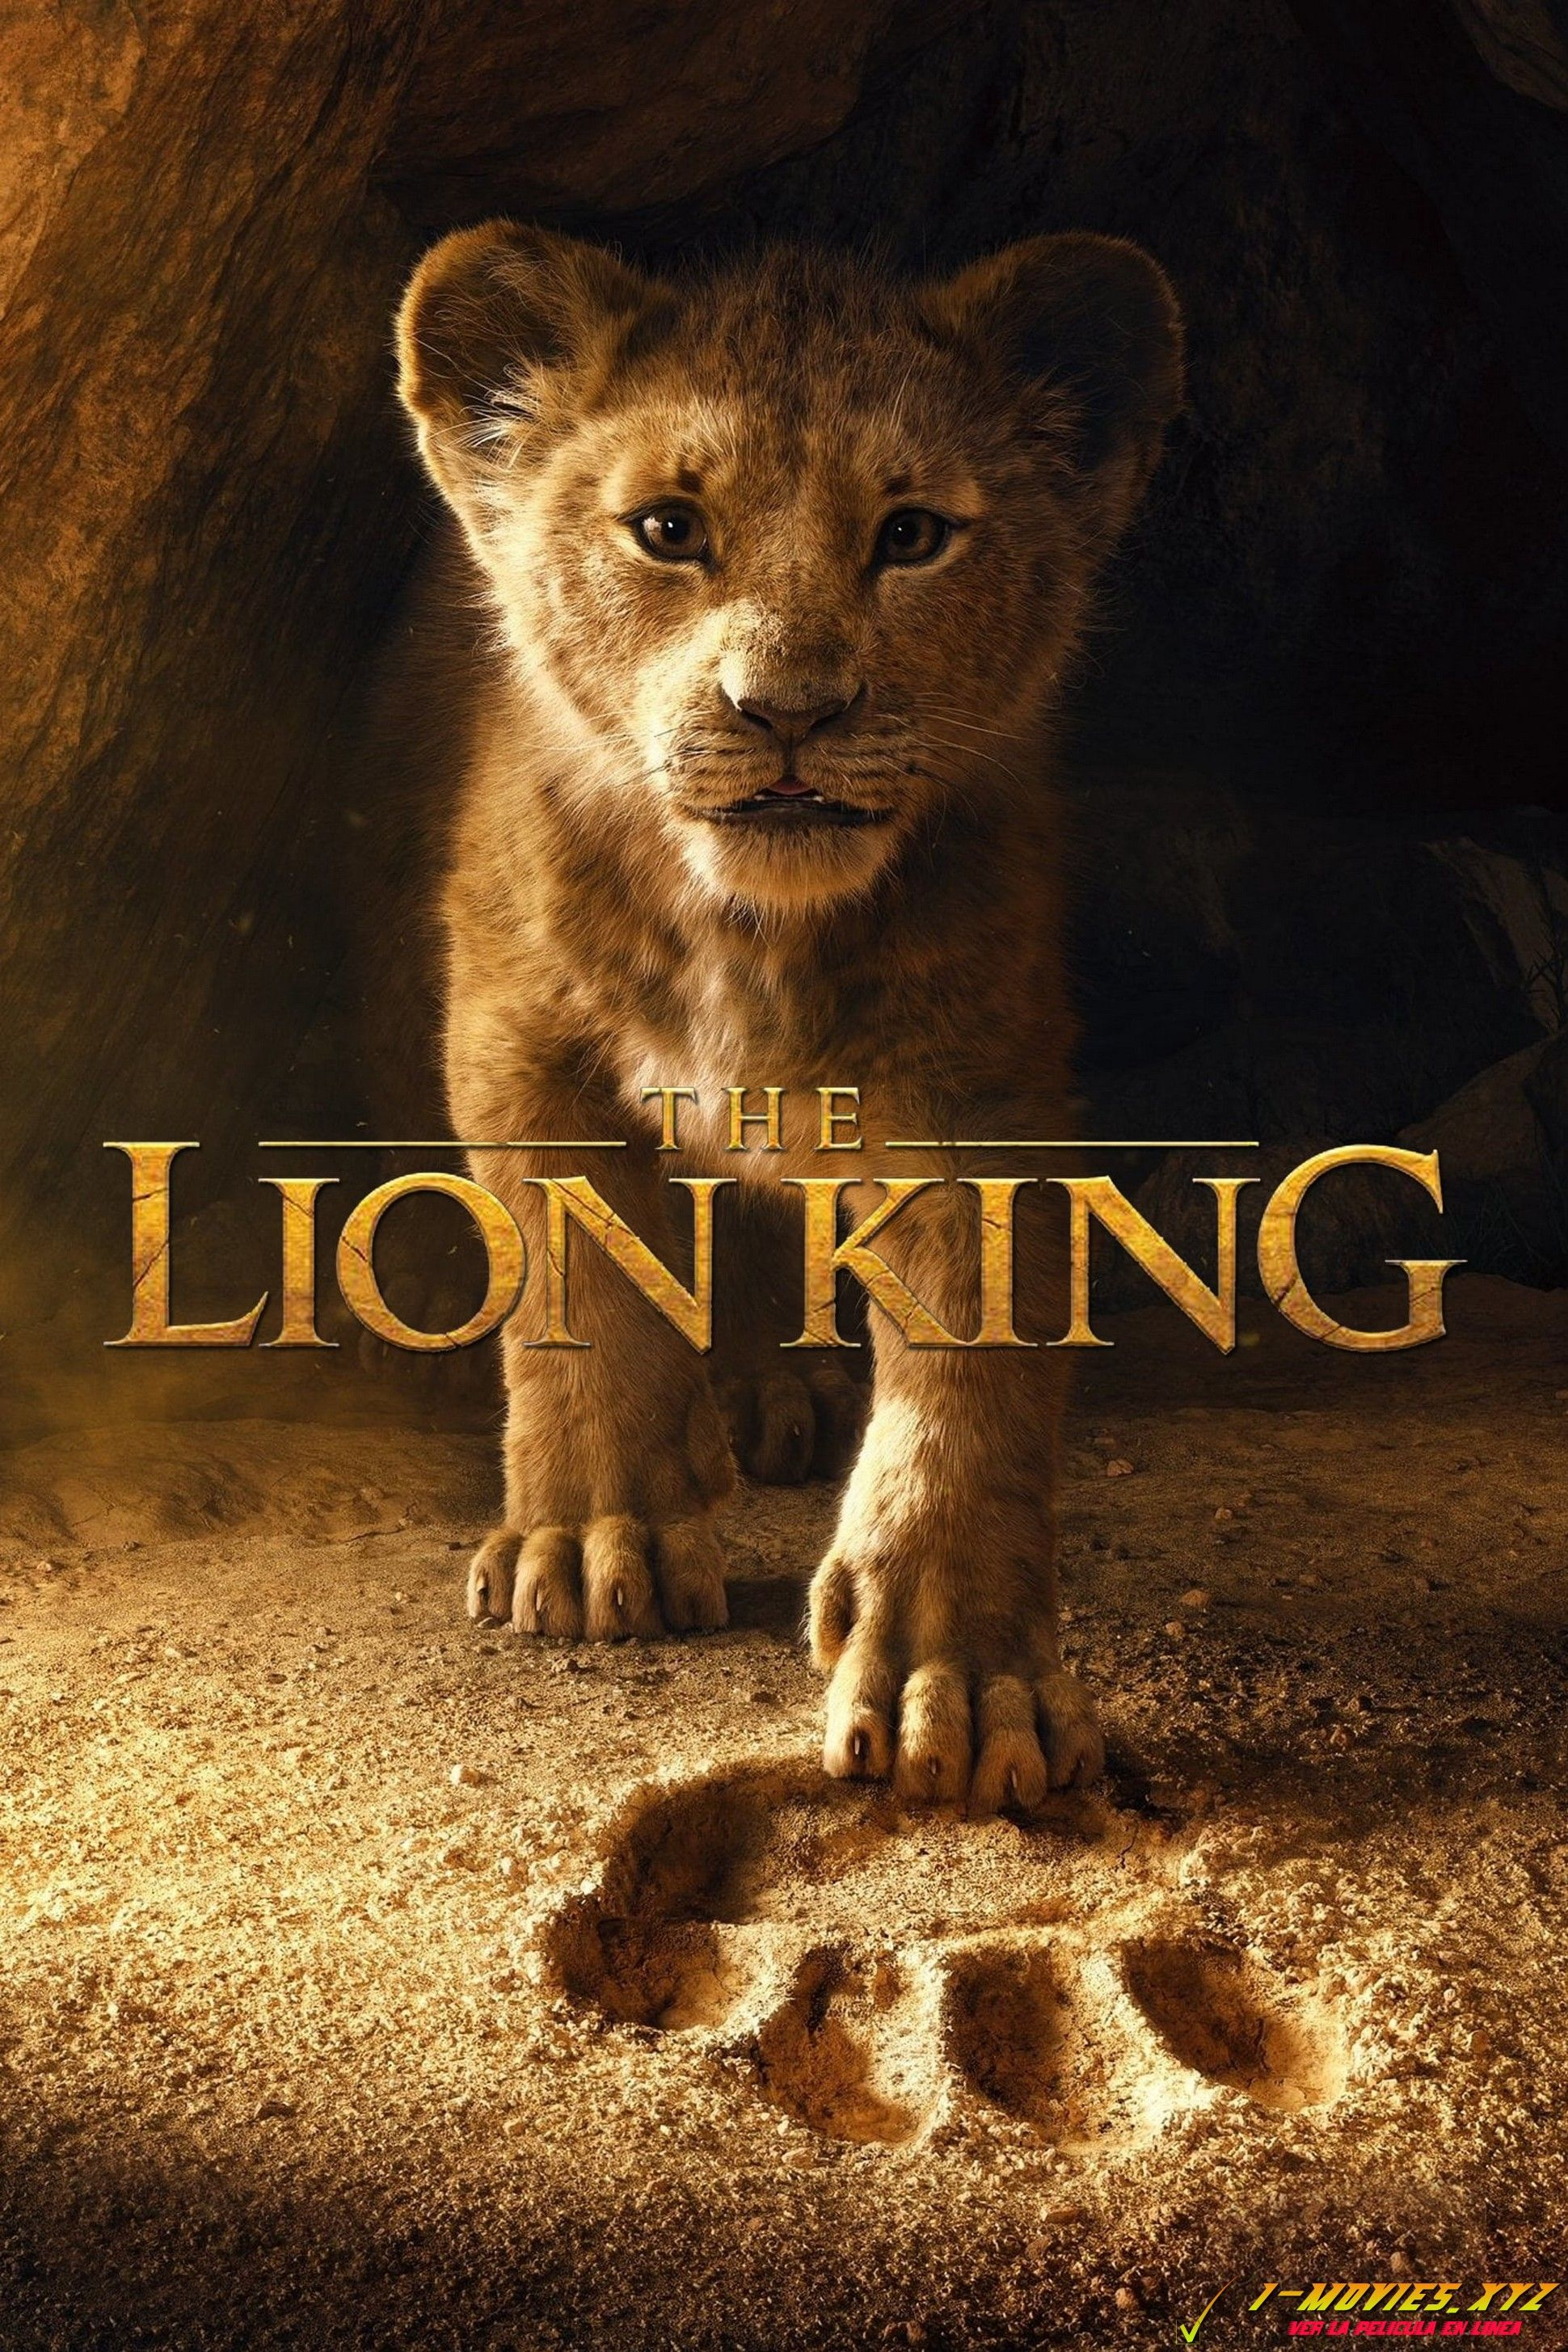 El Rey León Película Completa En Español Latino Allpelículas Watch The Lion King Lion King Movie Lion King